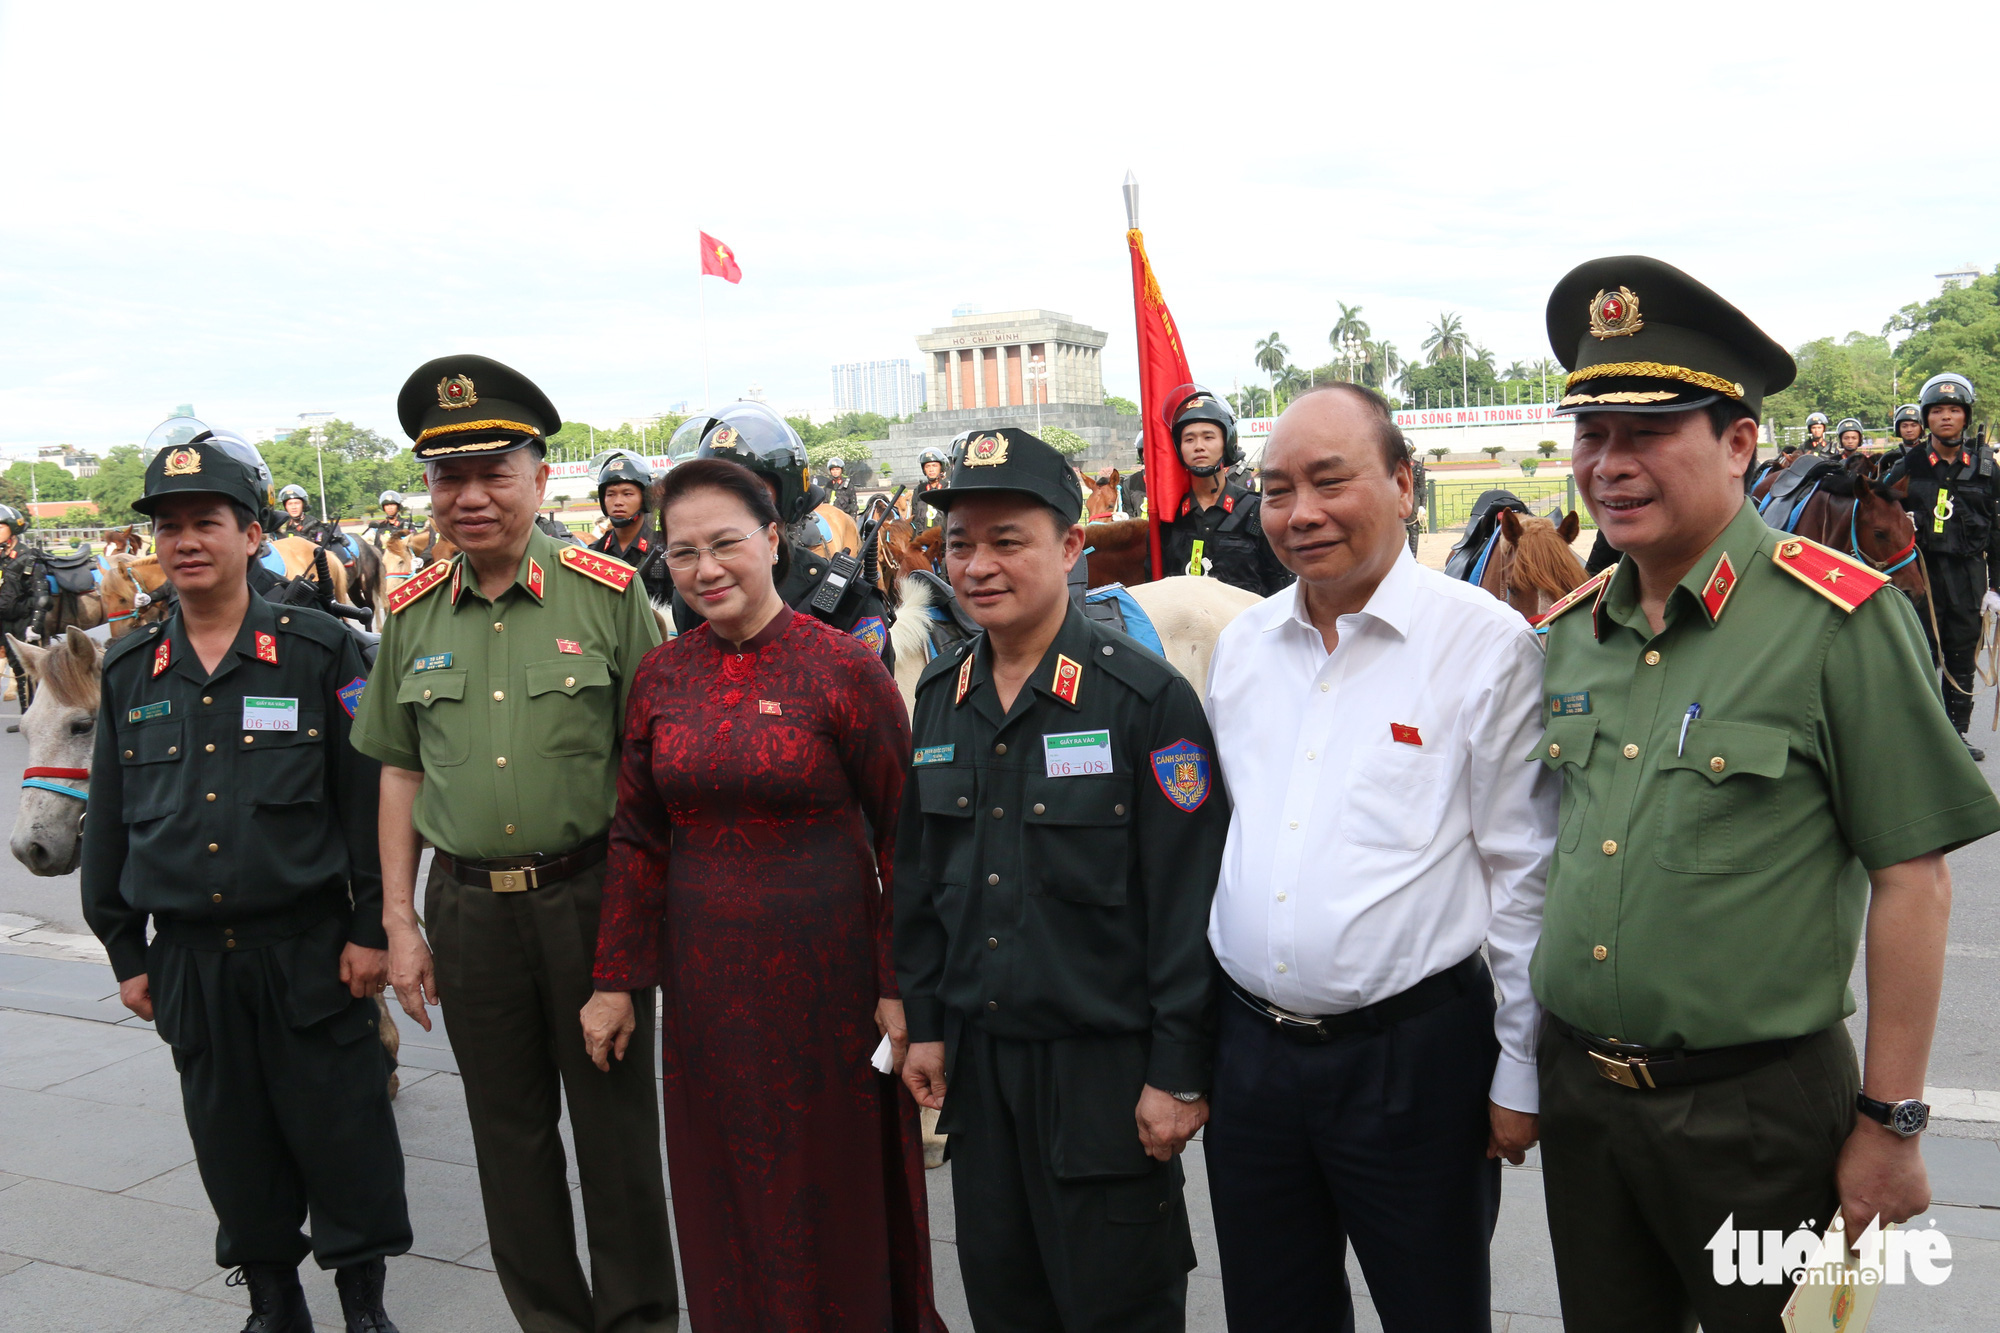 Prime Minister Nguyen Xuan Phuc and National Assembly Chairwoman Nguyen Thi Kim Ngan pose for a photo with officials from the Ministry of Public Security in Hanoi, Vietnam, June 8, 2020. Photo: Tien Long / Tuoi Tre